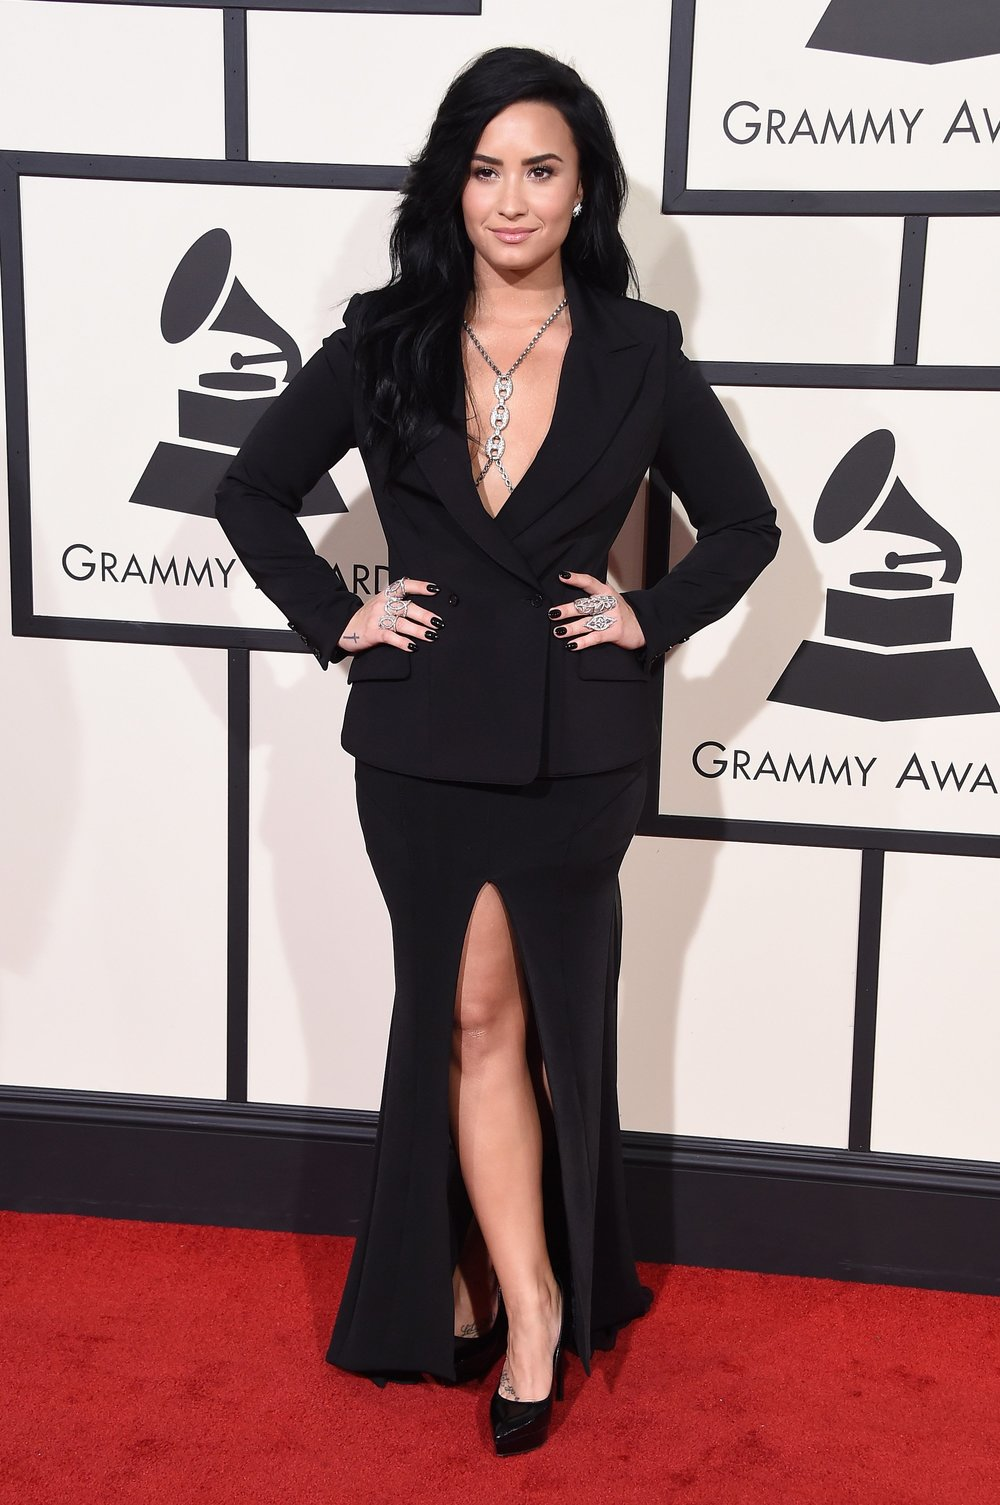 demi-lovato-grammys-red-carpet-2016.jpg